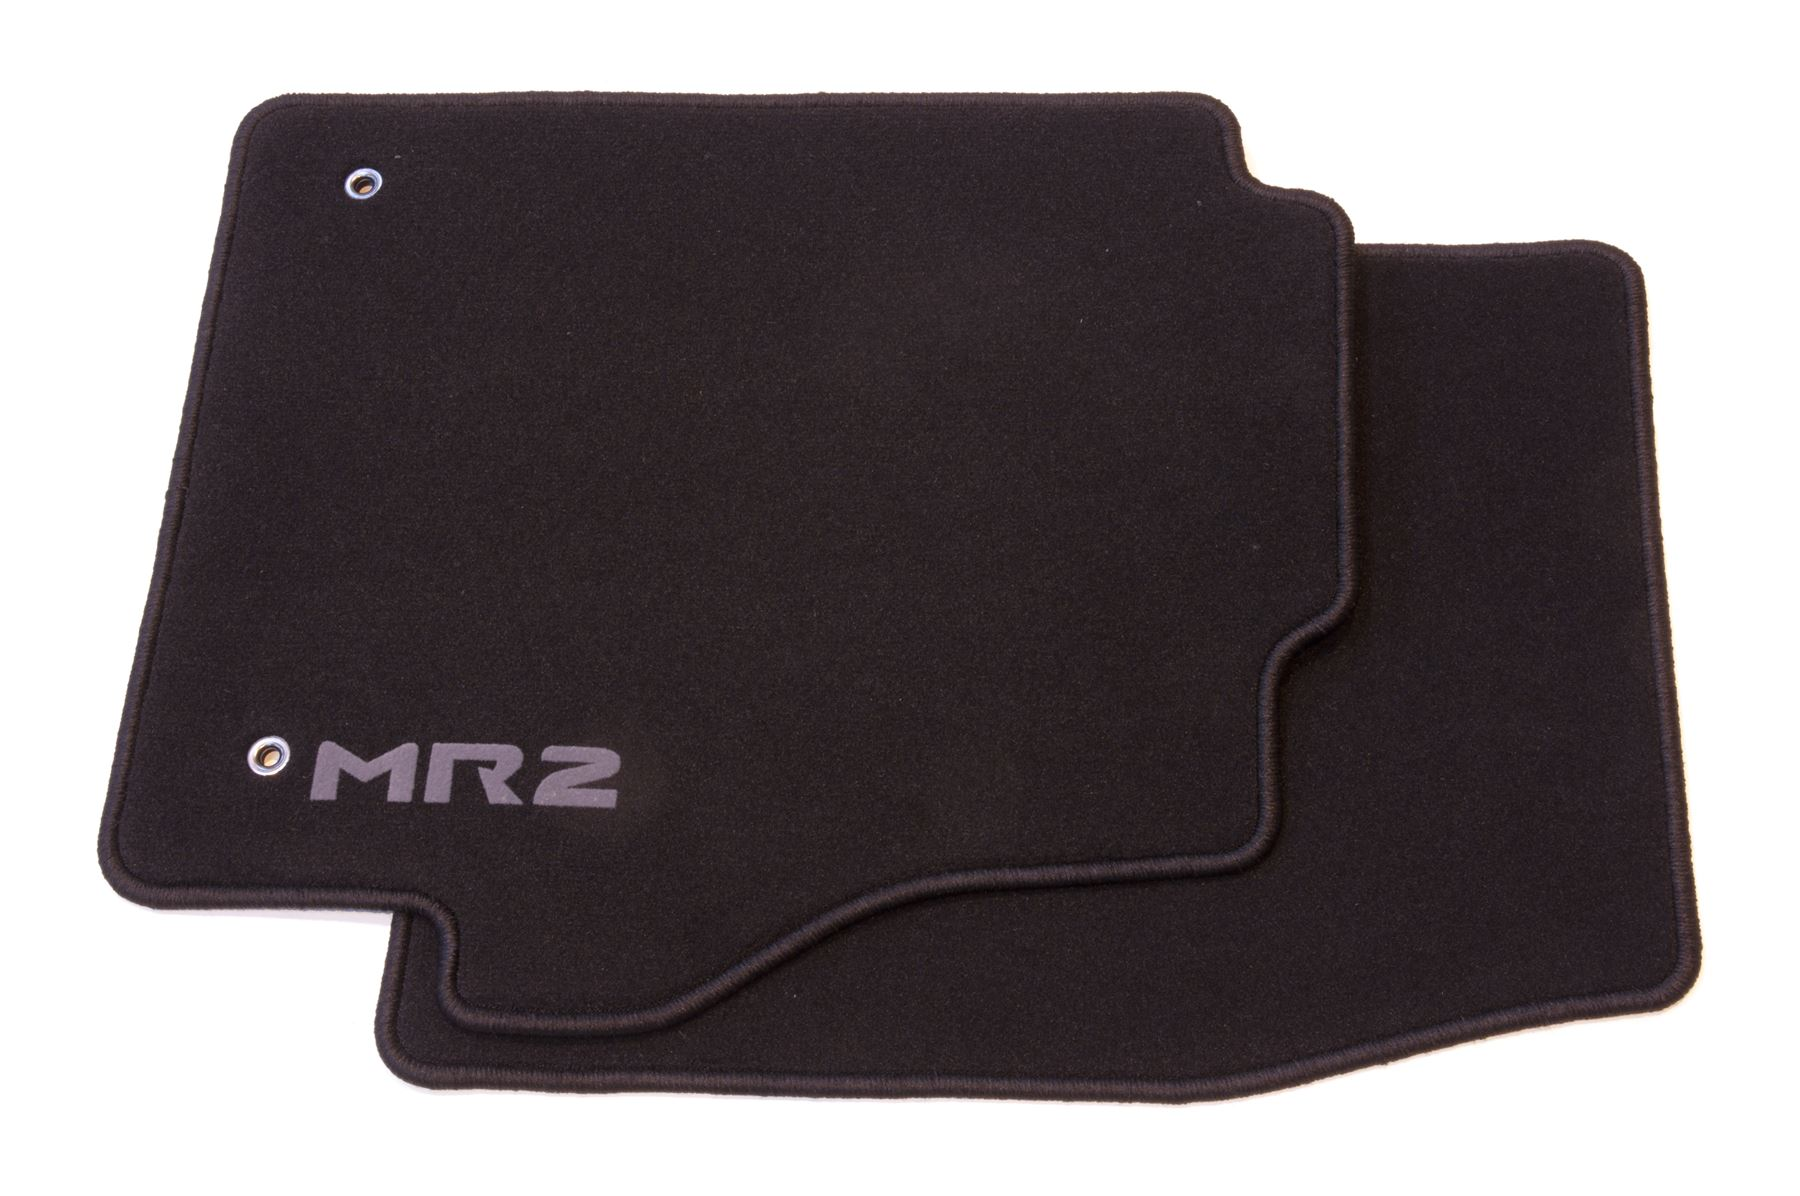 Genuine toyota luxury mr2 textile floor mats black set of for Original toyota floor mats